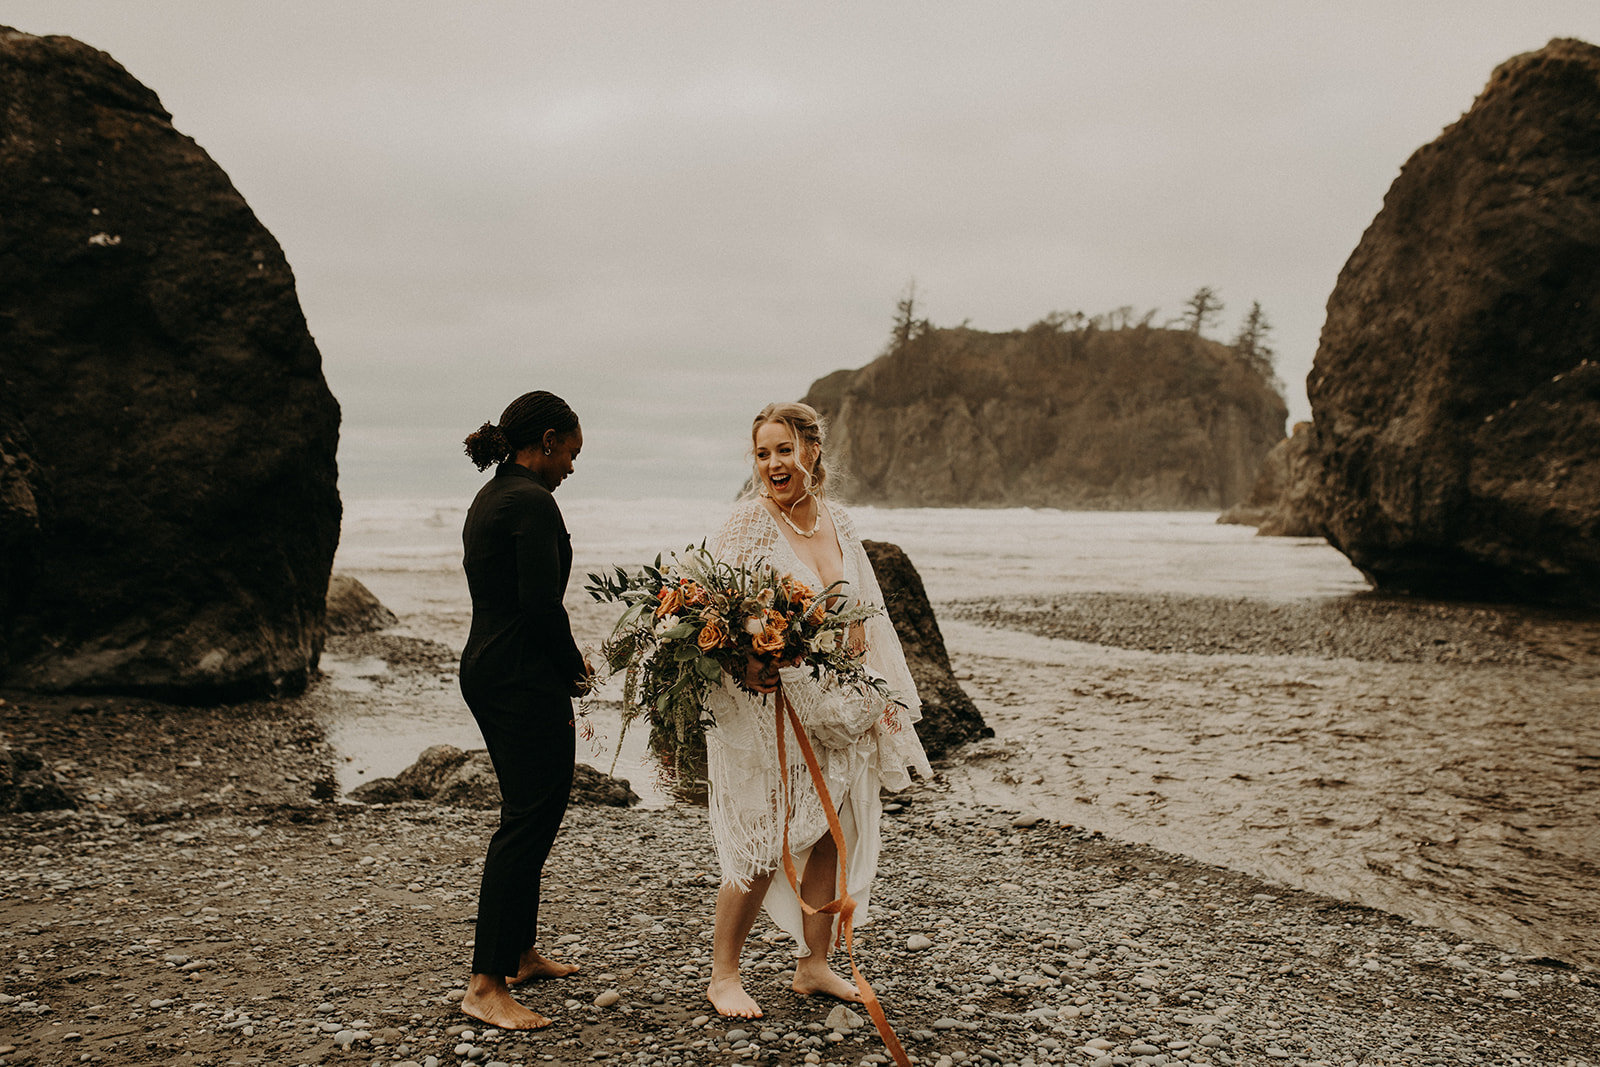 Ruby_Beach_Styled_Elopement_-_Run_Away_with_Me_Elopement_Collective_-_Kamra_Fuller_Photography_-_Champagne-2